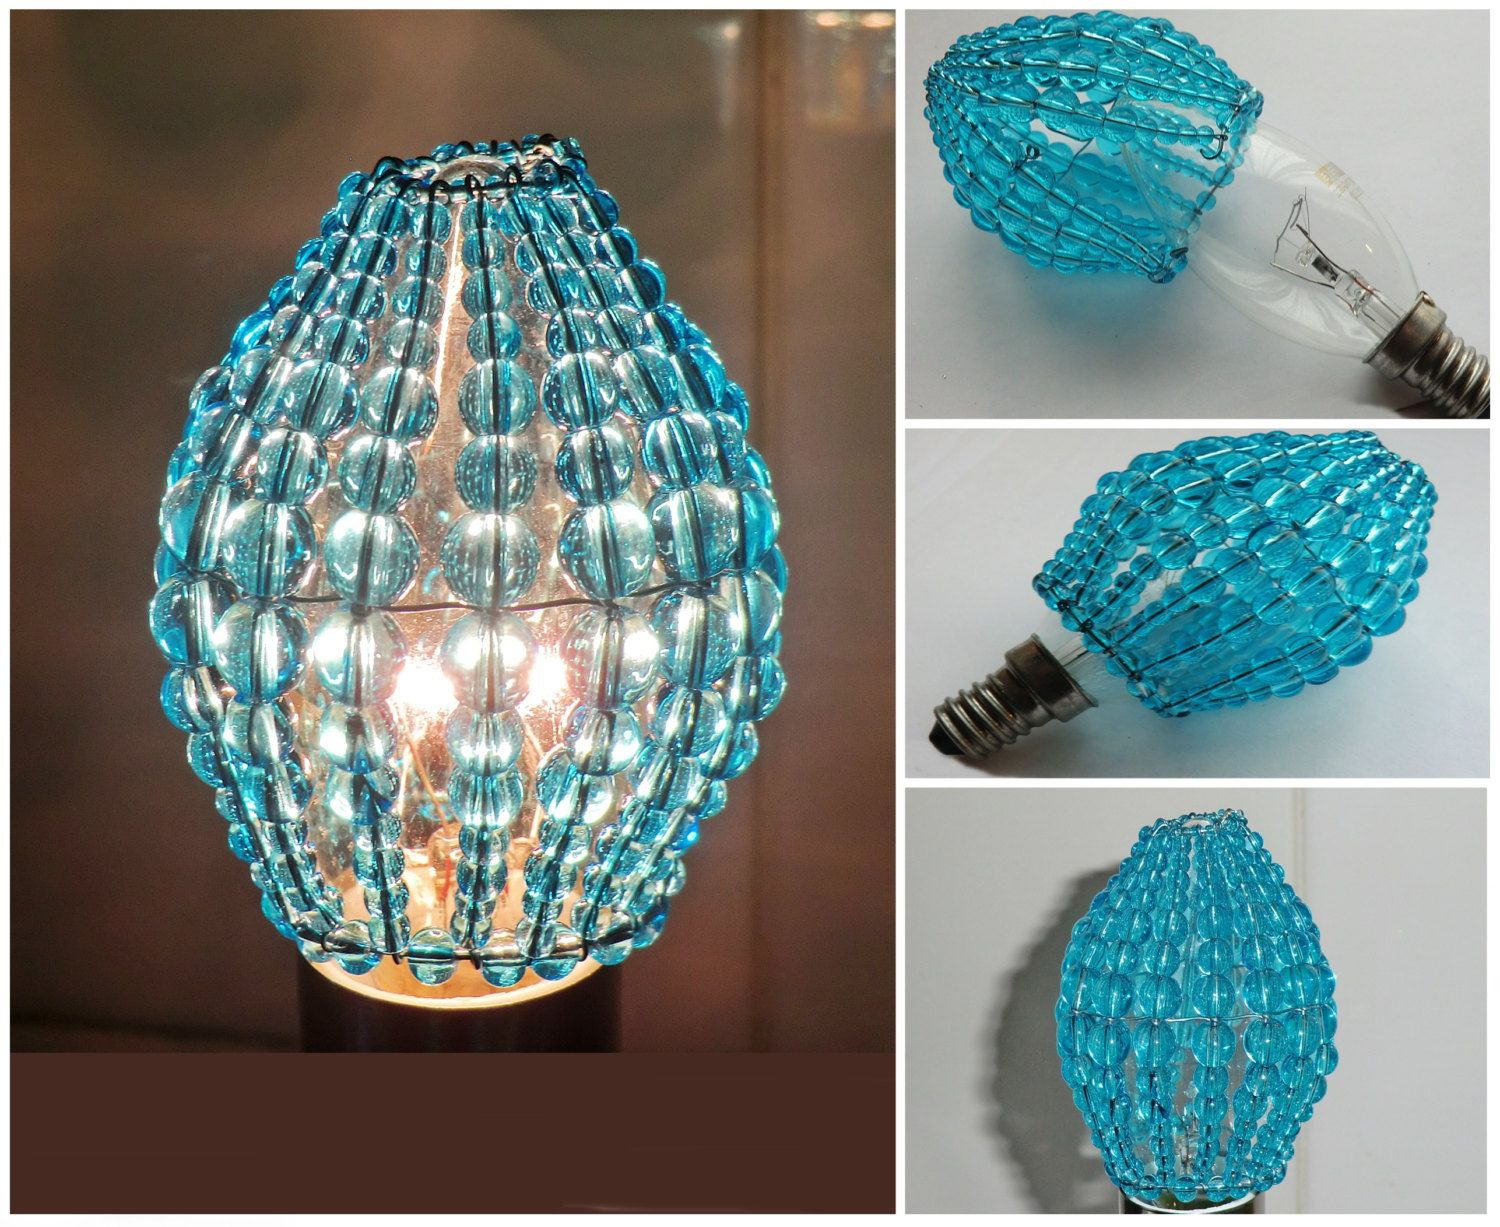 Crystal Chandelier Inspired Glass Beaded Lightbulb Candle Bulb Cover Turquoise Pendant Lamp Teal Aqua Shade